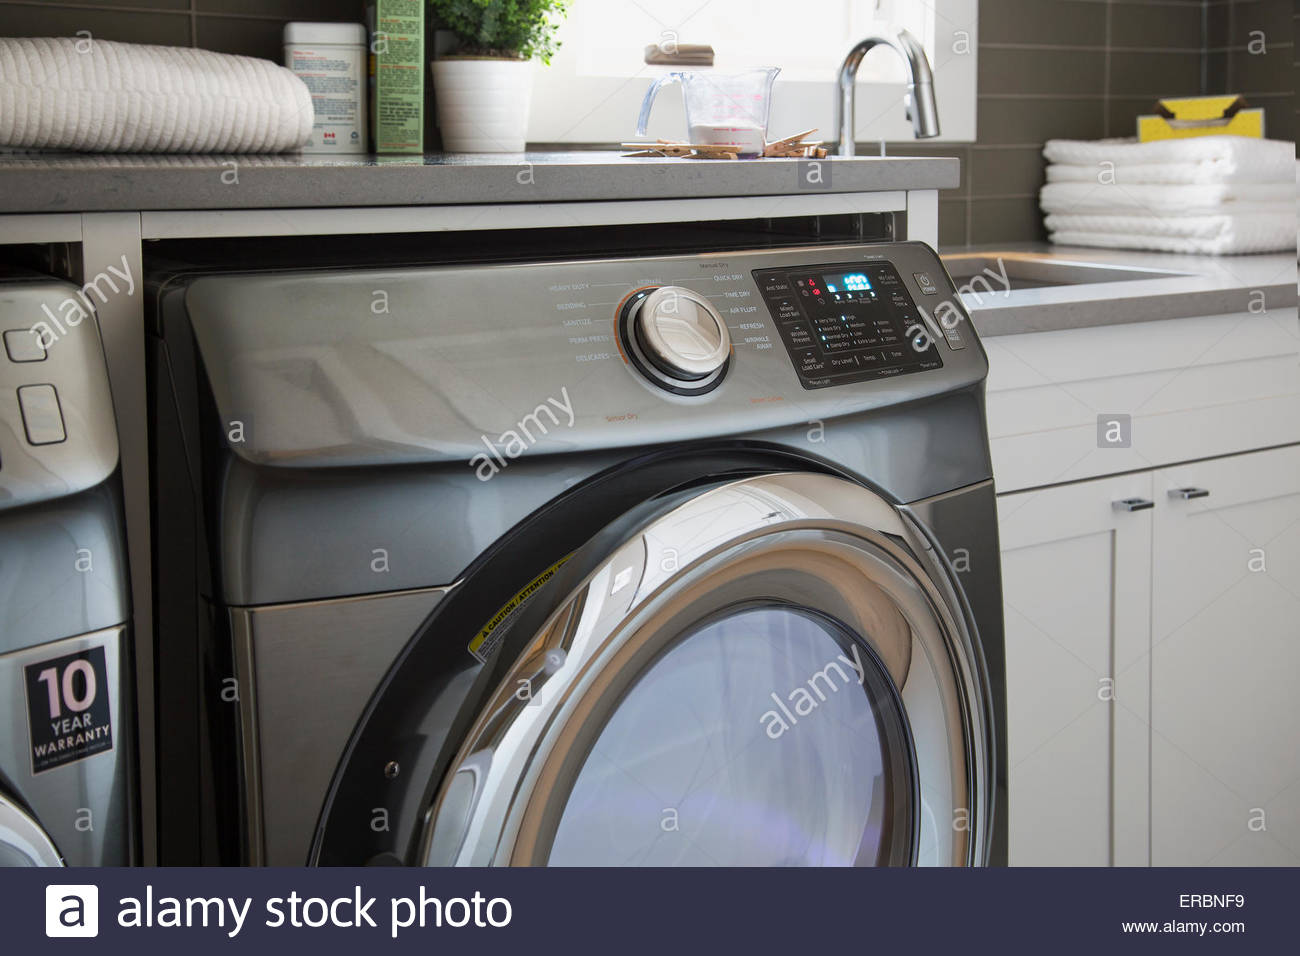 Energy efficient washing machine in laundry room - Stock Image